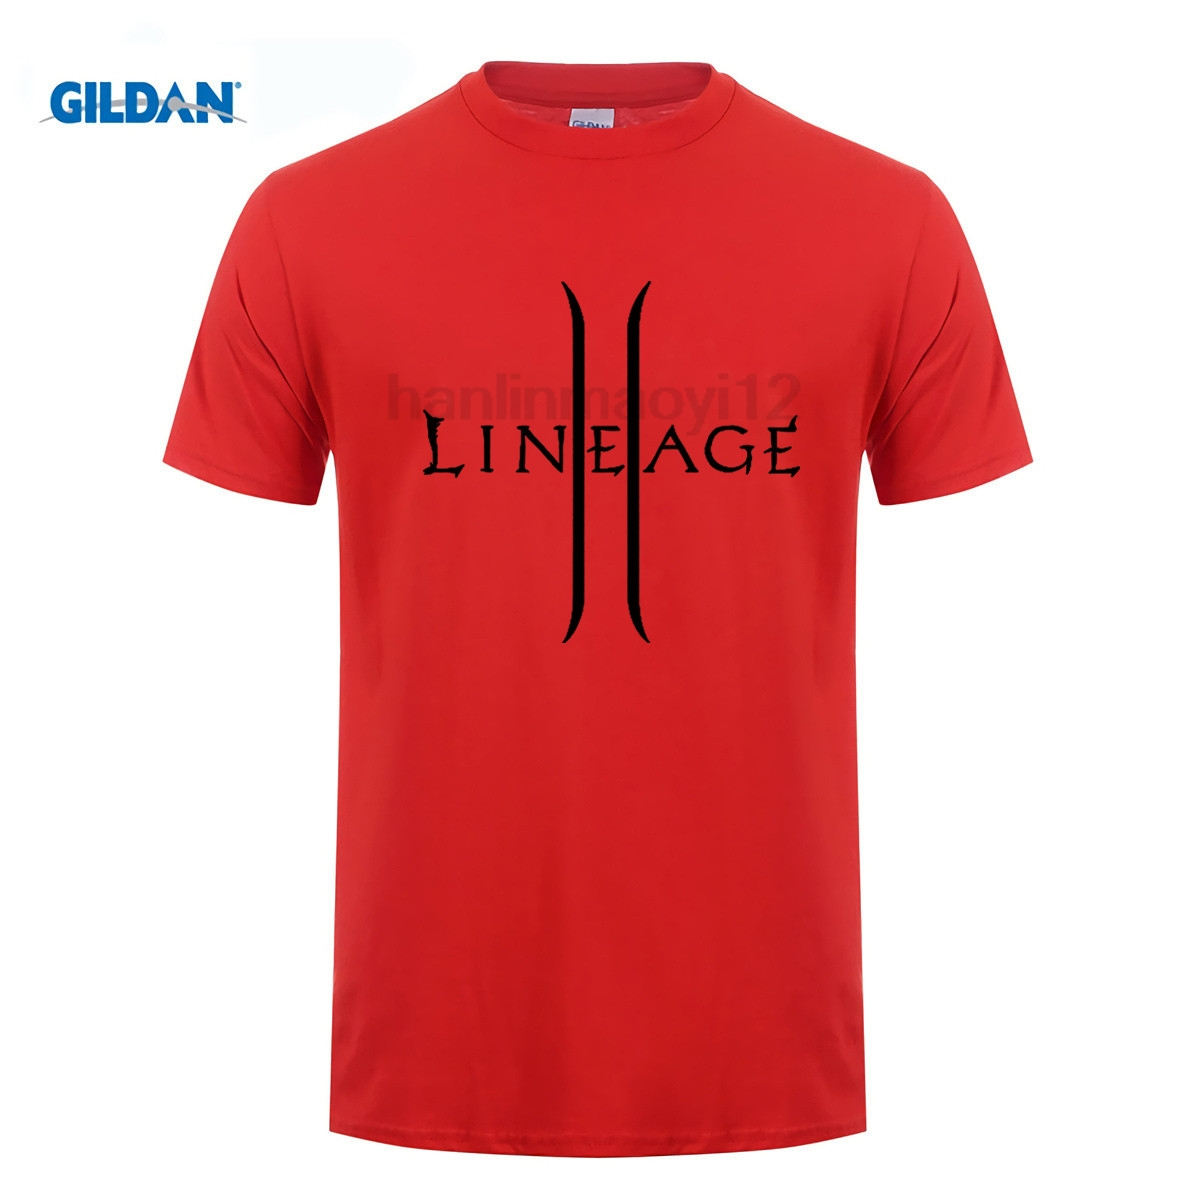 682844ff9 GILDAN designer t shirt Lineage 2 The Chaotic Throne T shirt Top Lycra  Cotton Men T shirt New Design-in T-Shirts from Men's Clothing on  Aliexpress.com ...